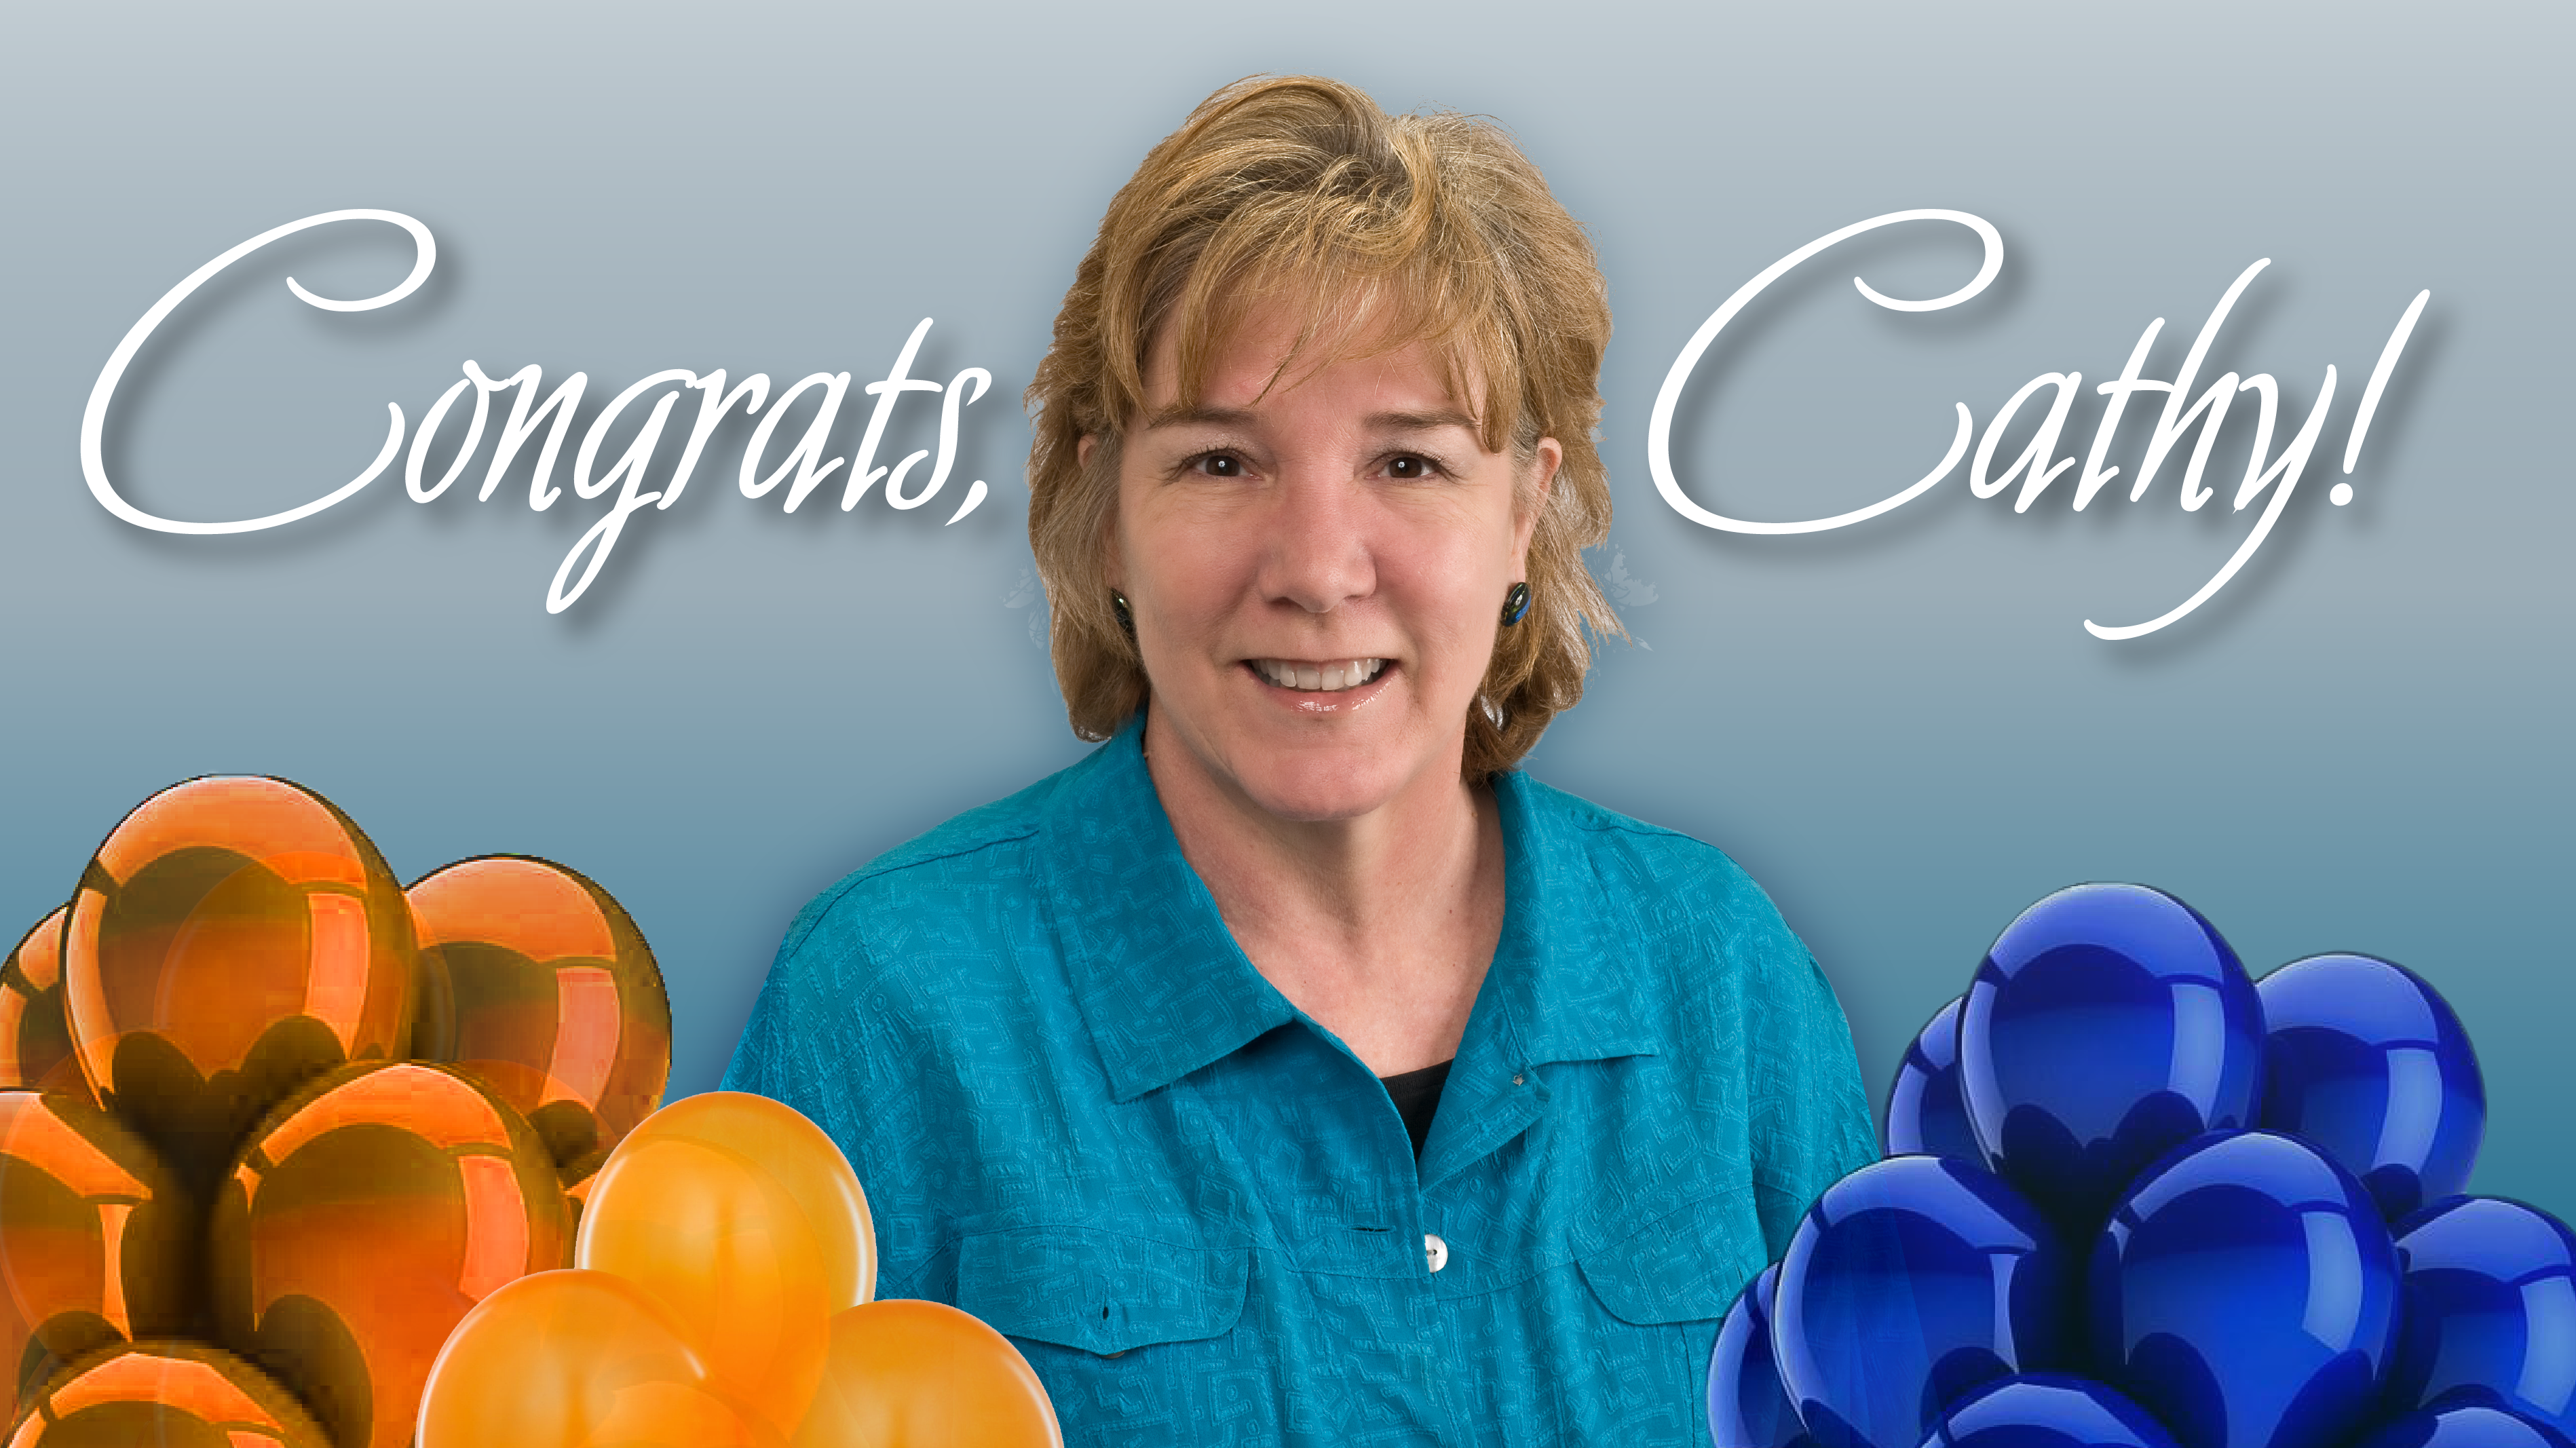 Congrats Cathy Brown